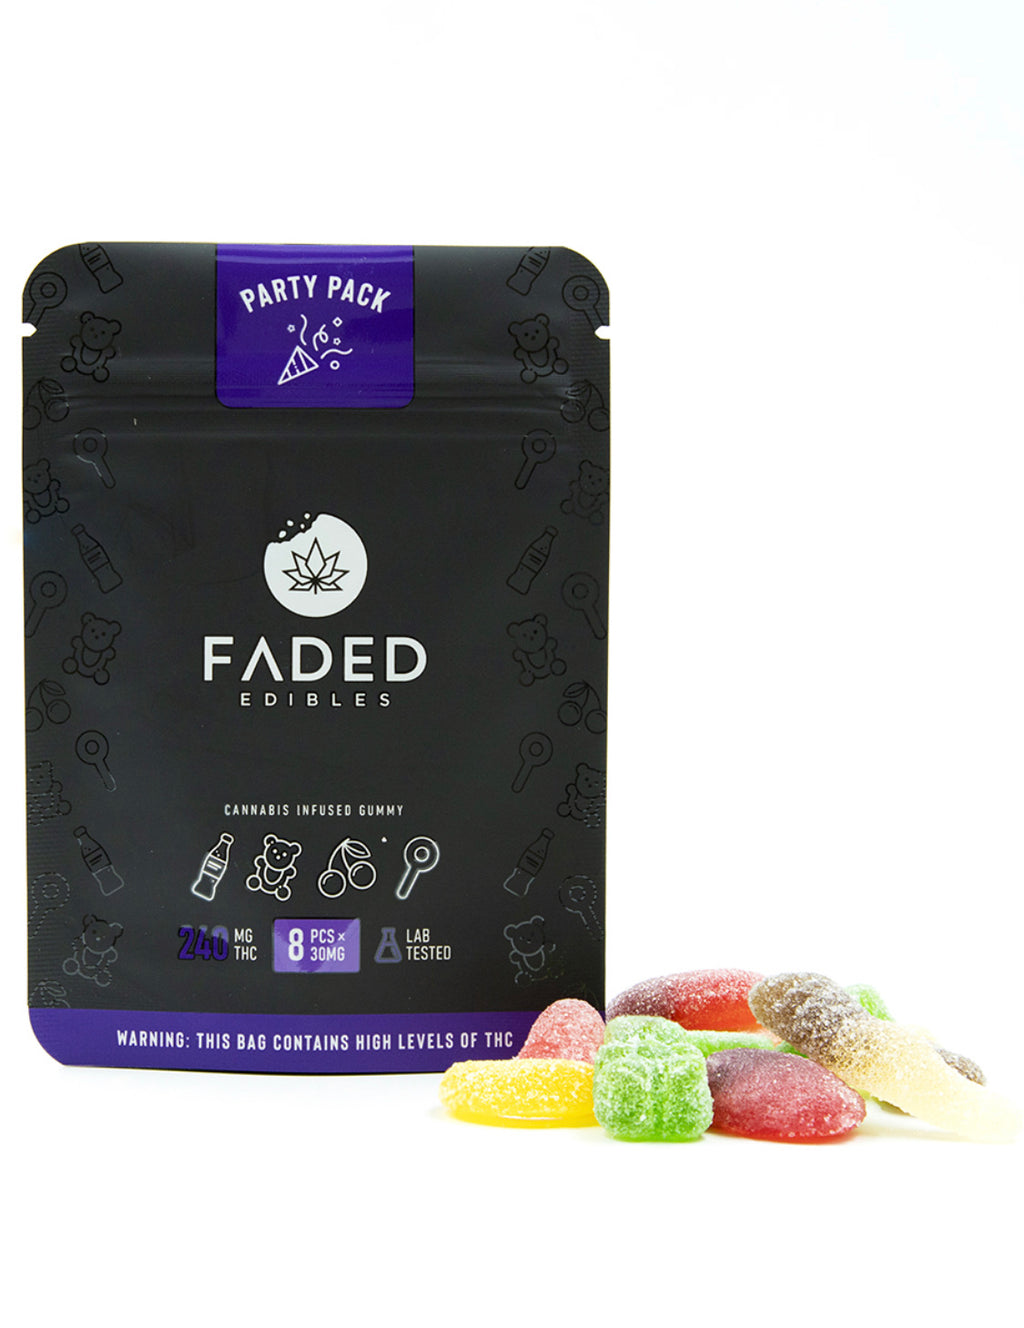 240mg THC Faded Edibles Party Pack